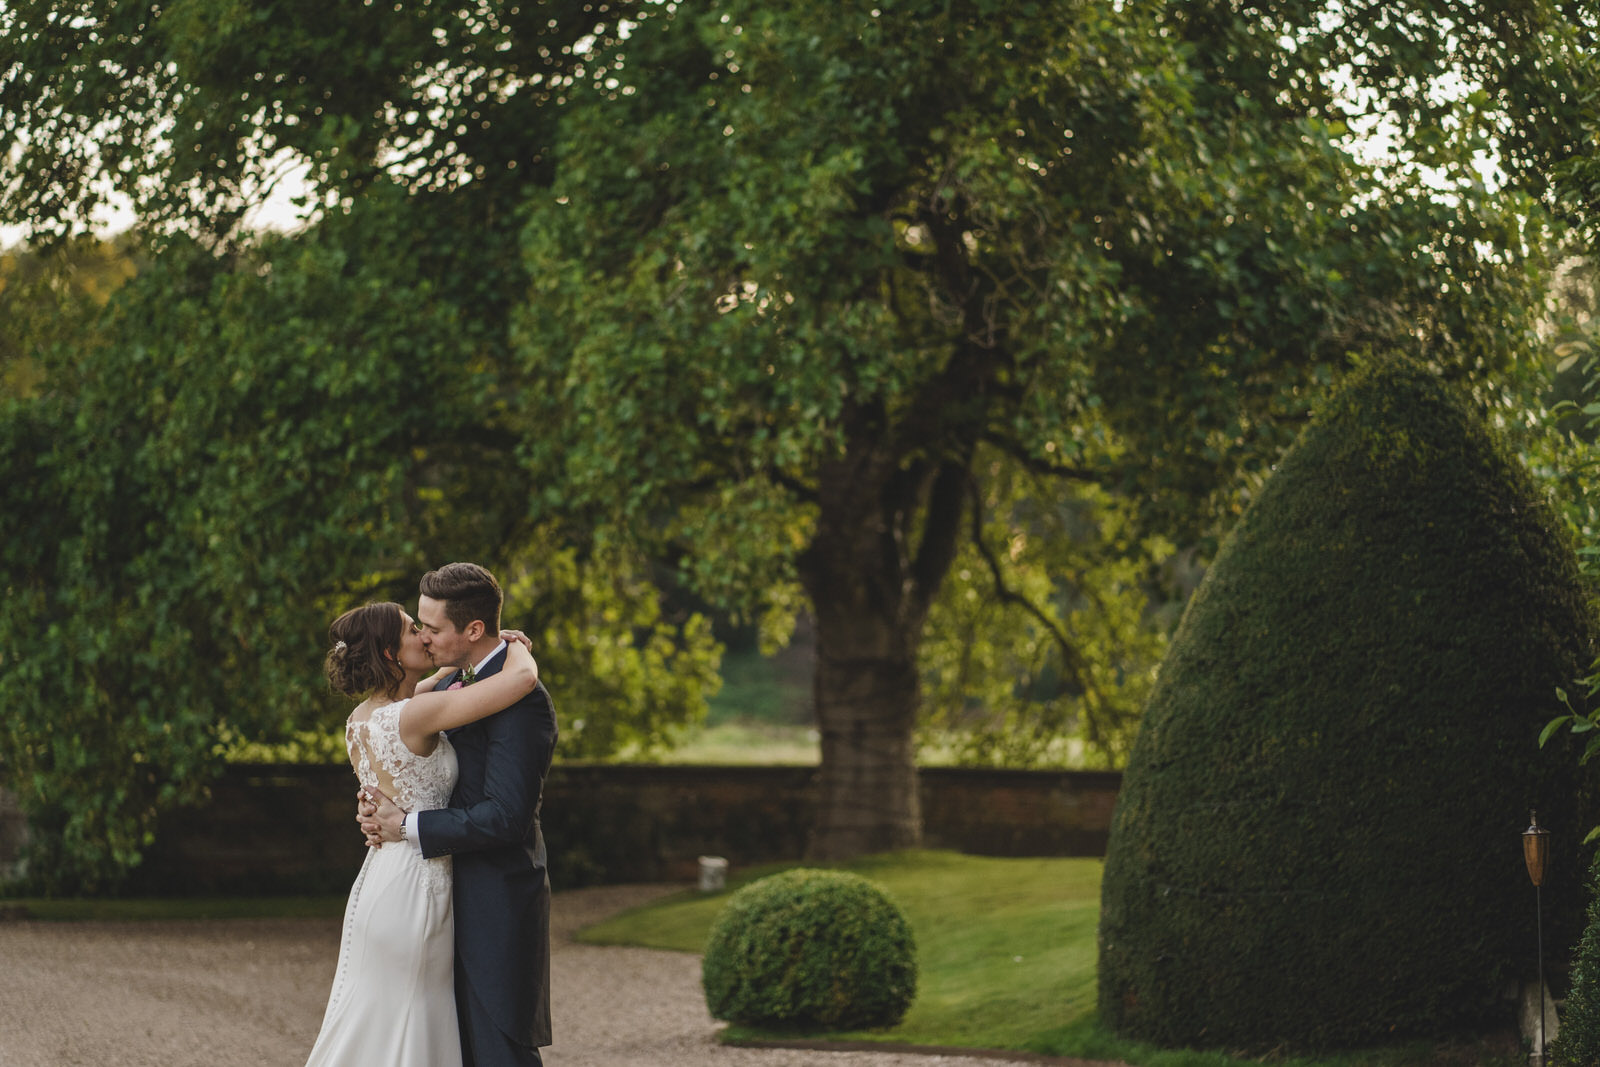 a romantic evening shot of bride and groom at Iscoyd Park in Shropshire